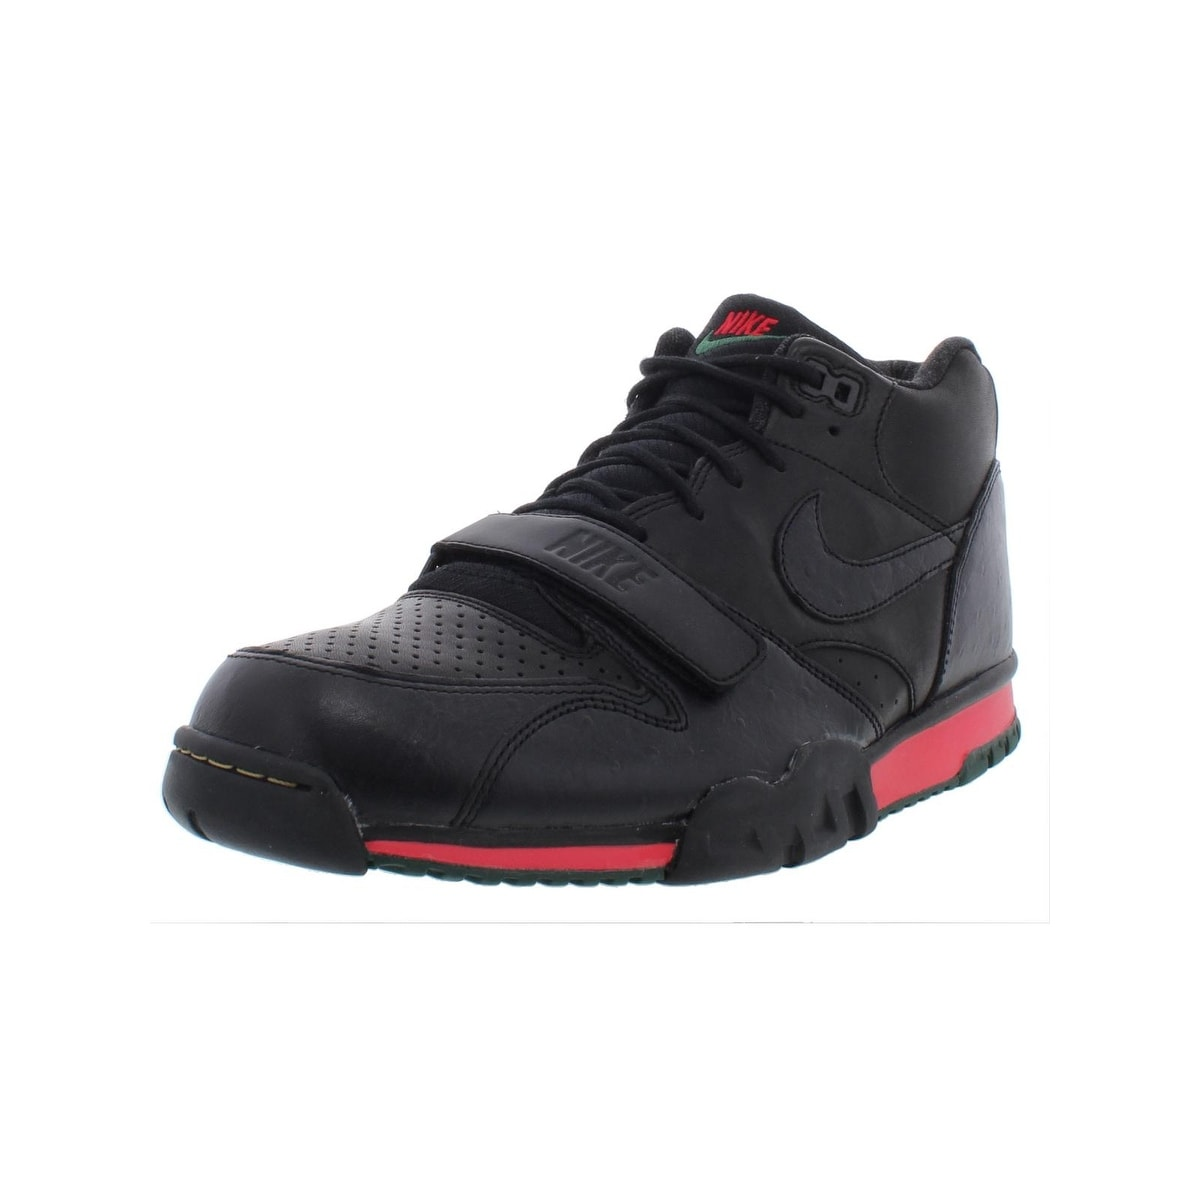 big sale 19216 b238d Nike Mens Nike Air Trainer 1 Mid PRM QS Basketball Shoes Leather Sports -  12 Medium (D)